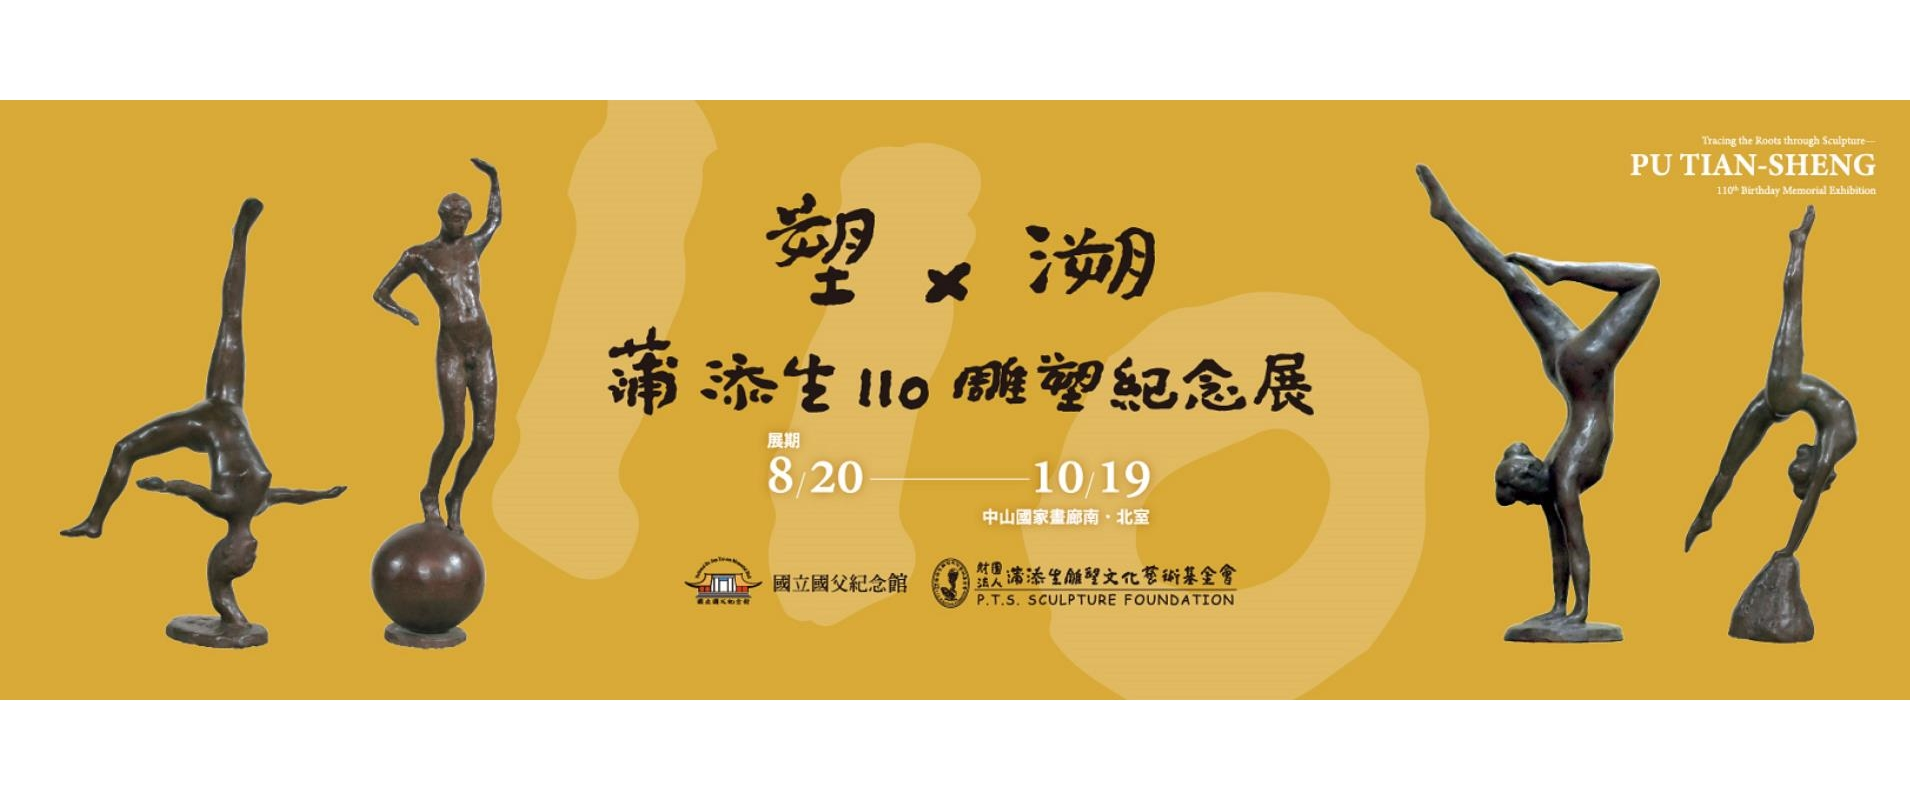 Tracing the roots through sculpture: Pu Tian-Sheng 110th birthday memorial exhibitionopennewwindow